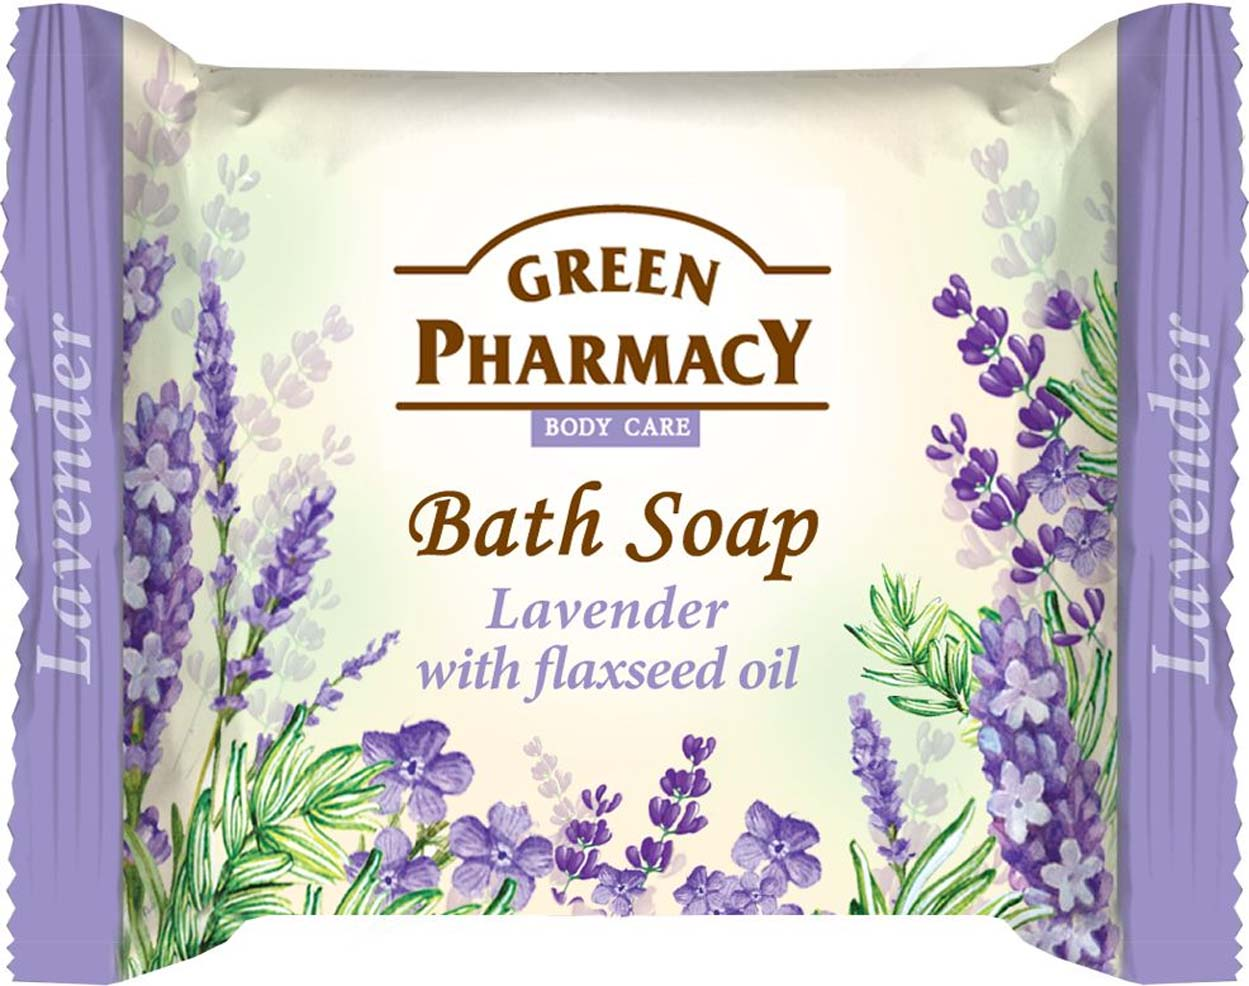 Bath soap Lavander with flaxseed oil /Туалетное мыло Лаванда и льняное масло100g